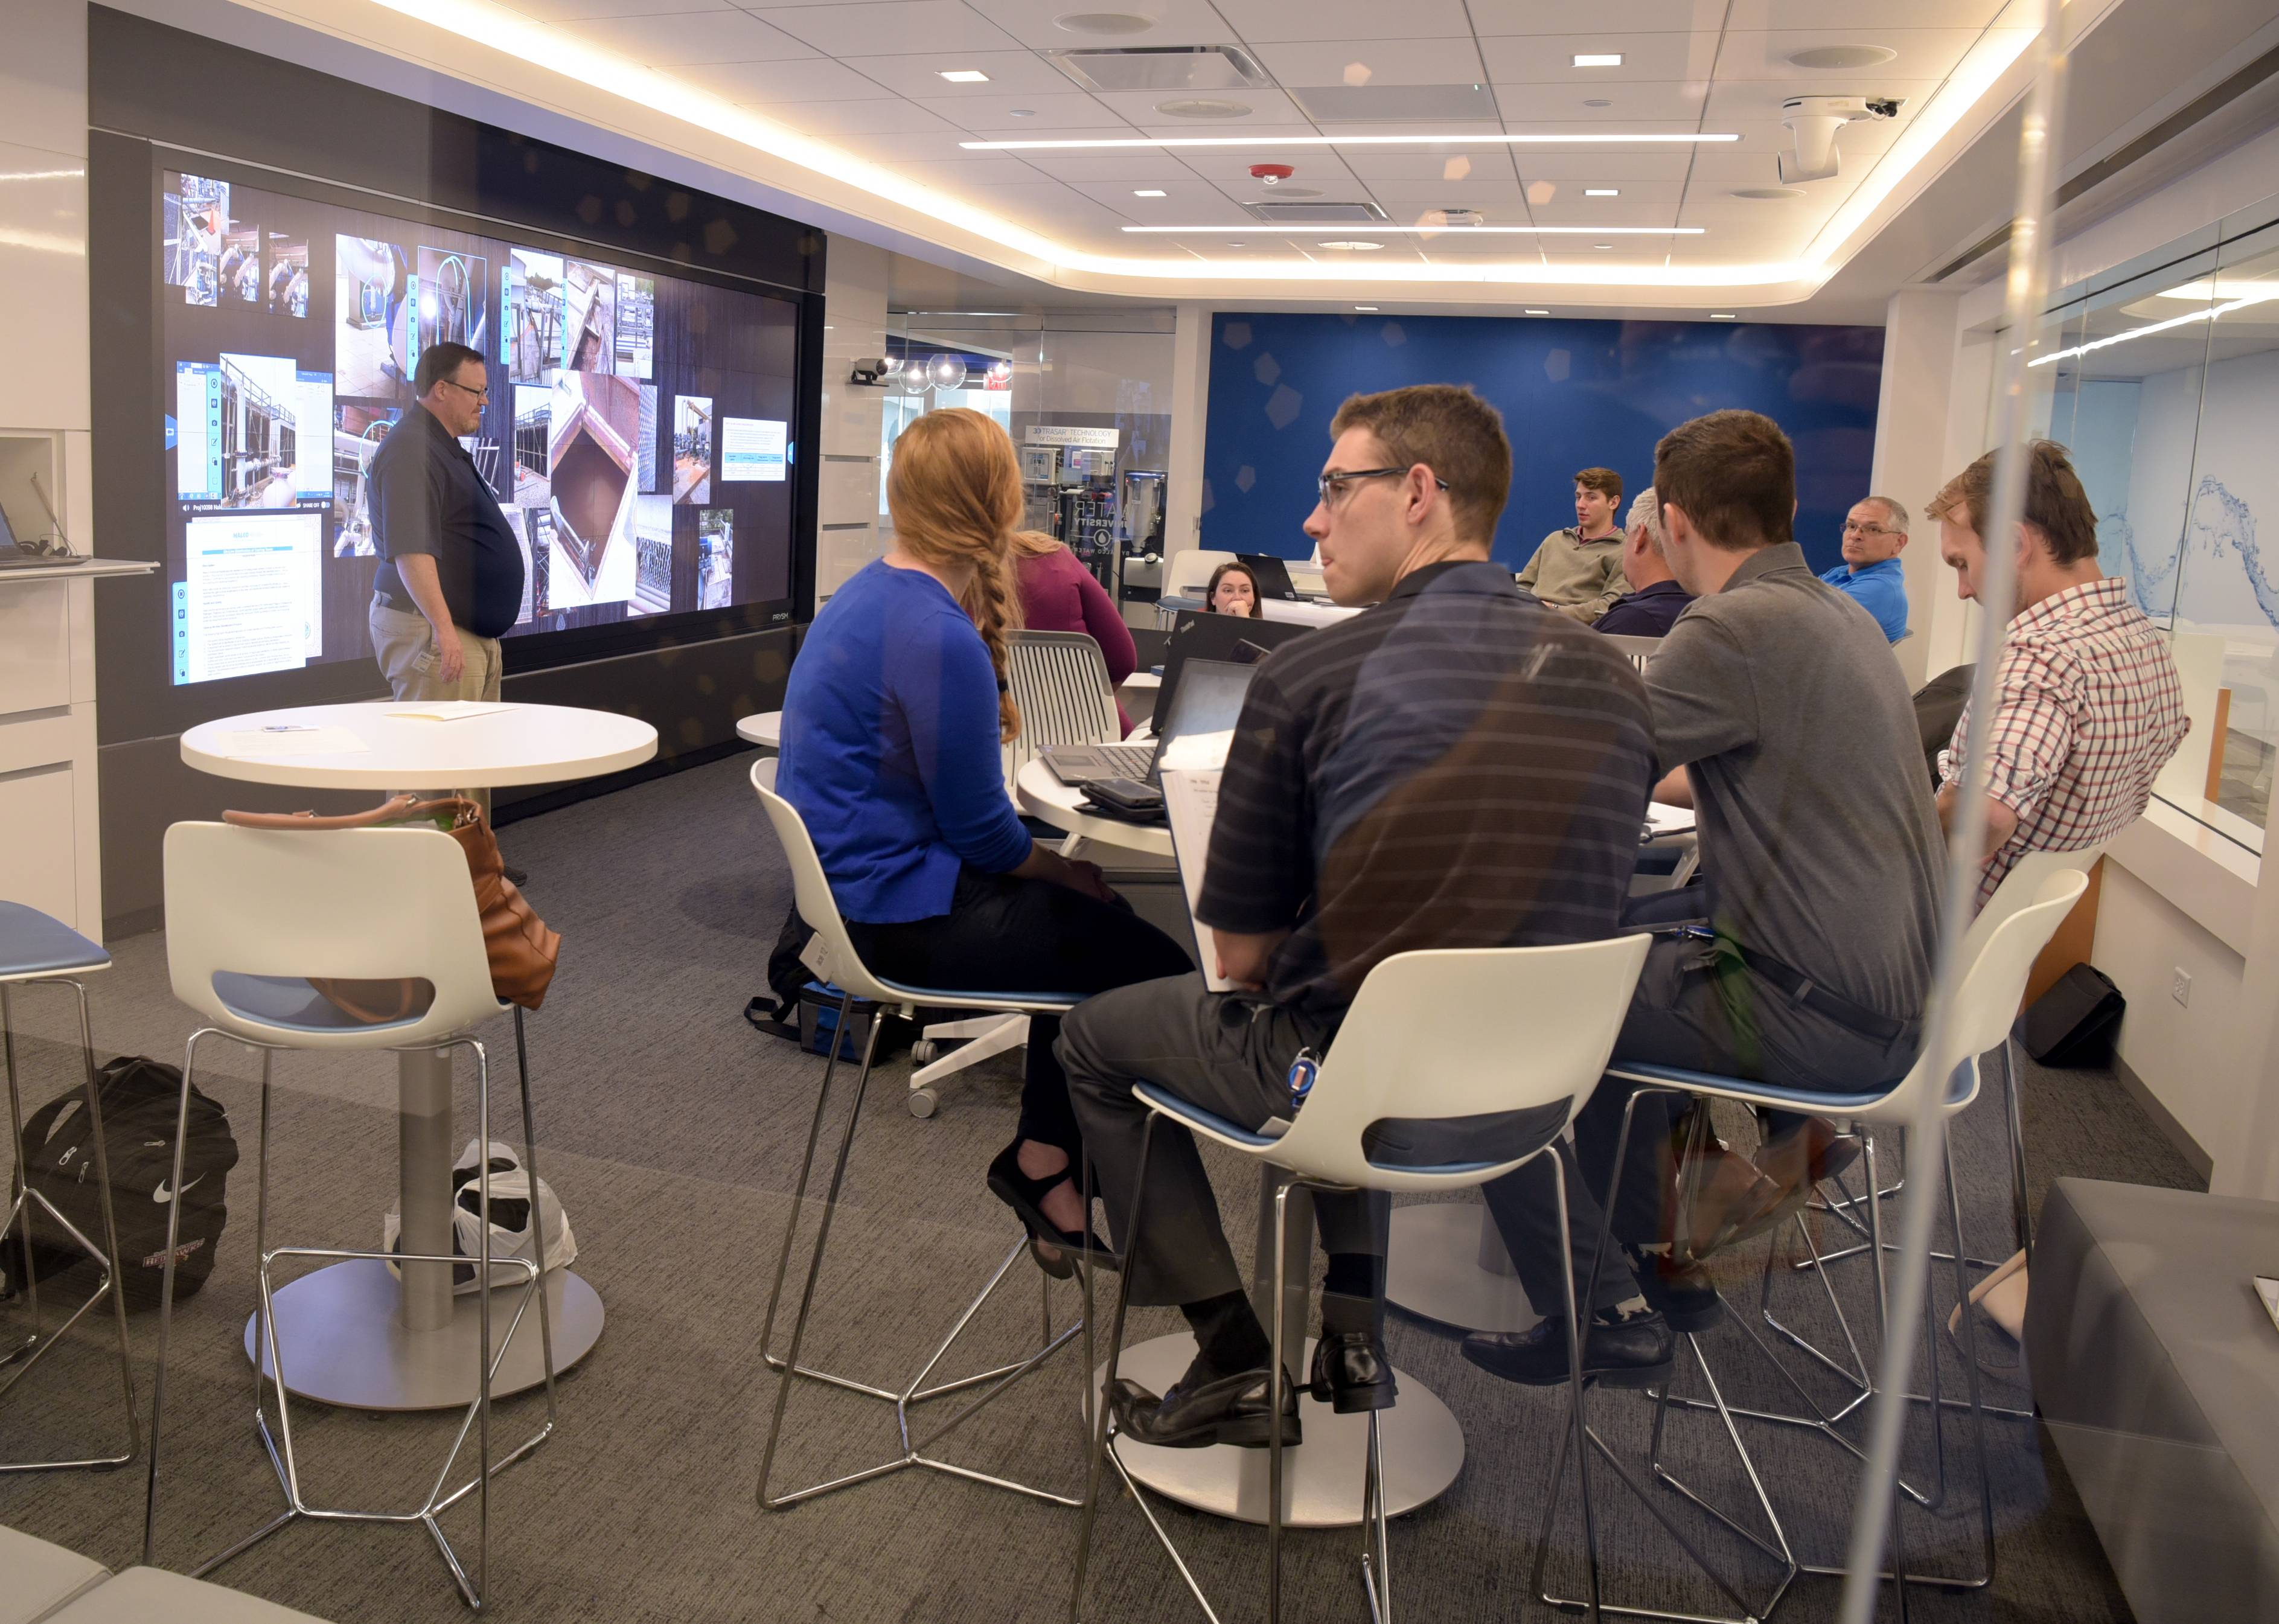 One of the interactive learning centers in the new Water University at the Nalco Water/Ecolab campus in Naperville features a multimedia wall and group seating.